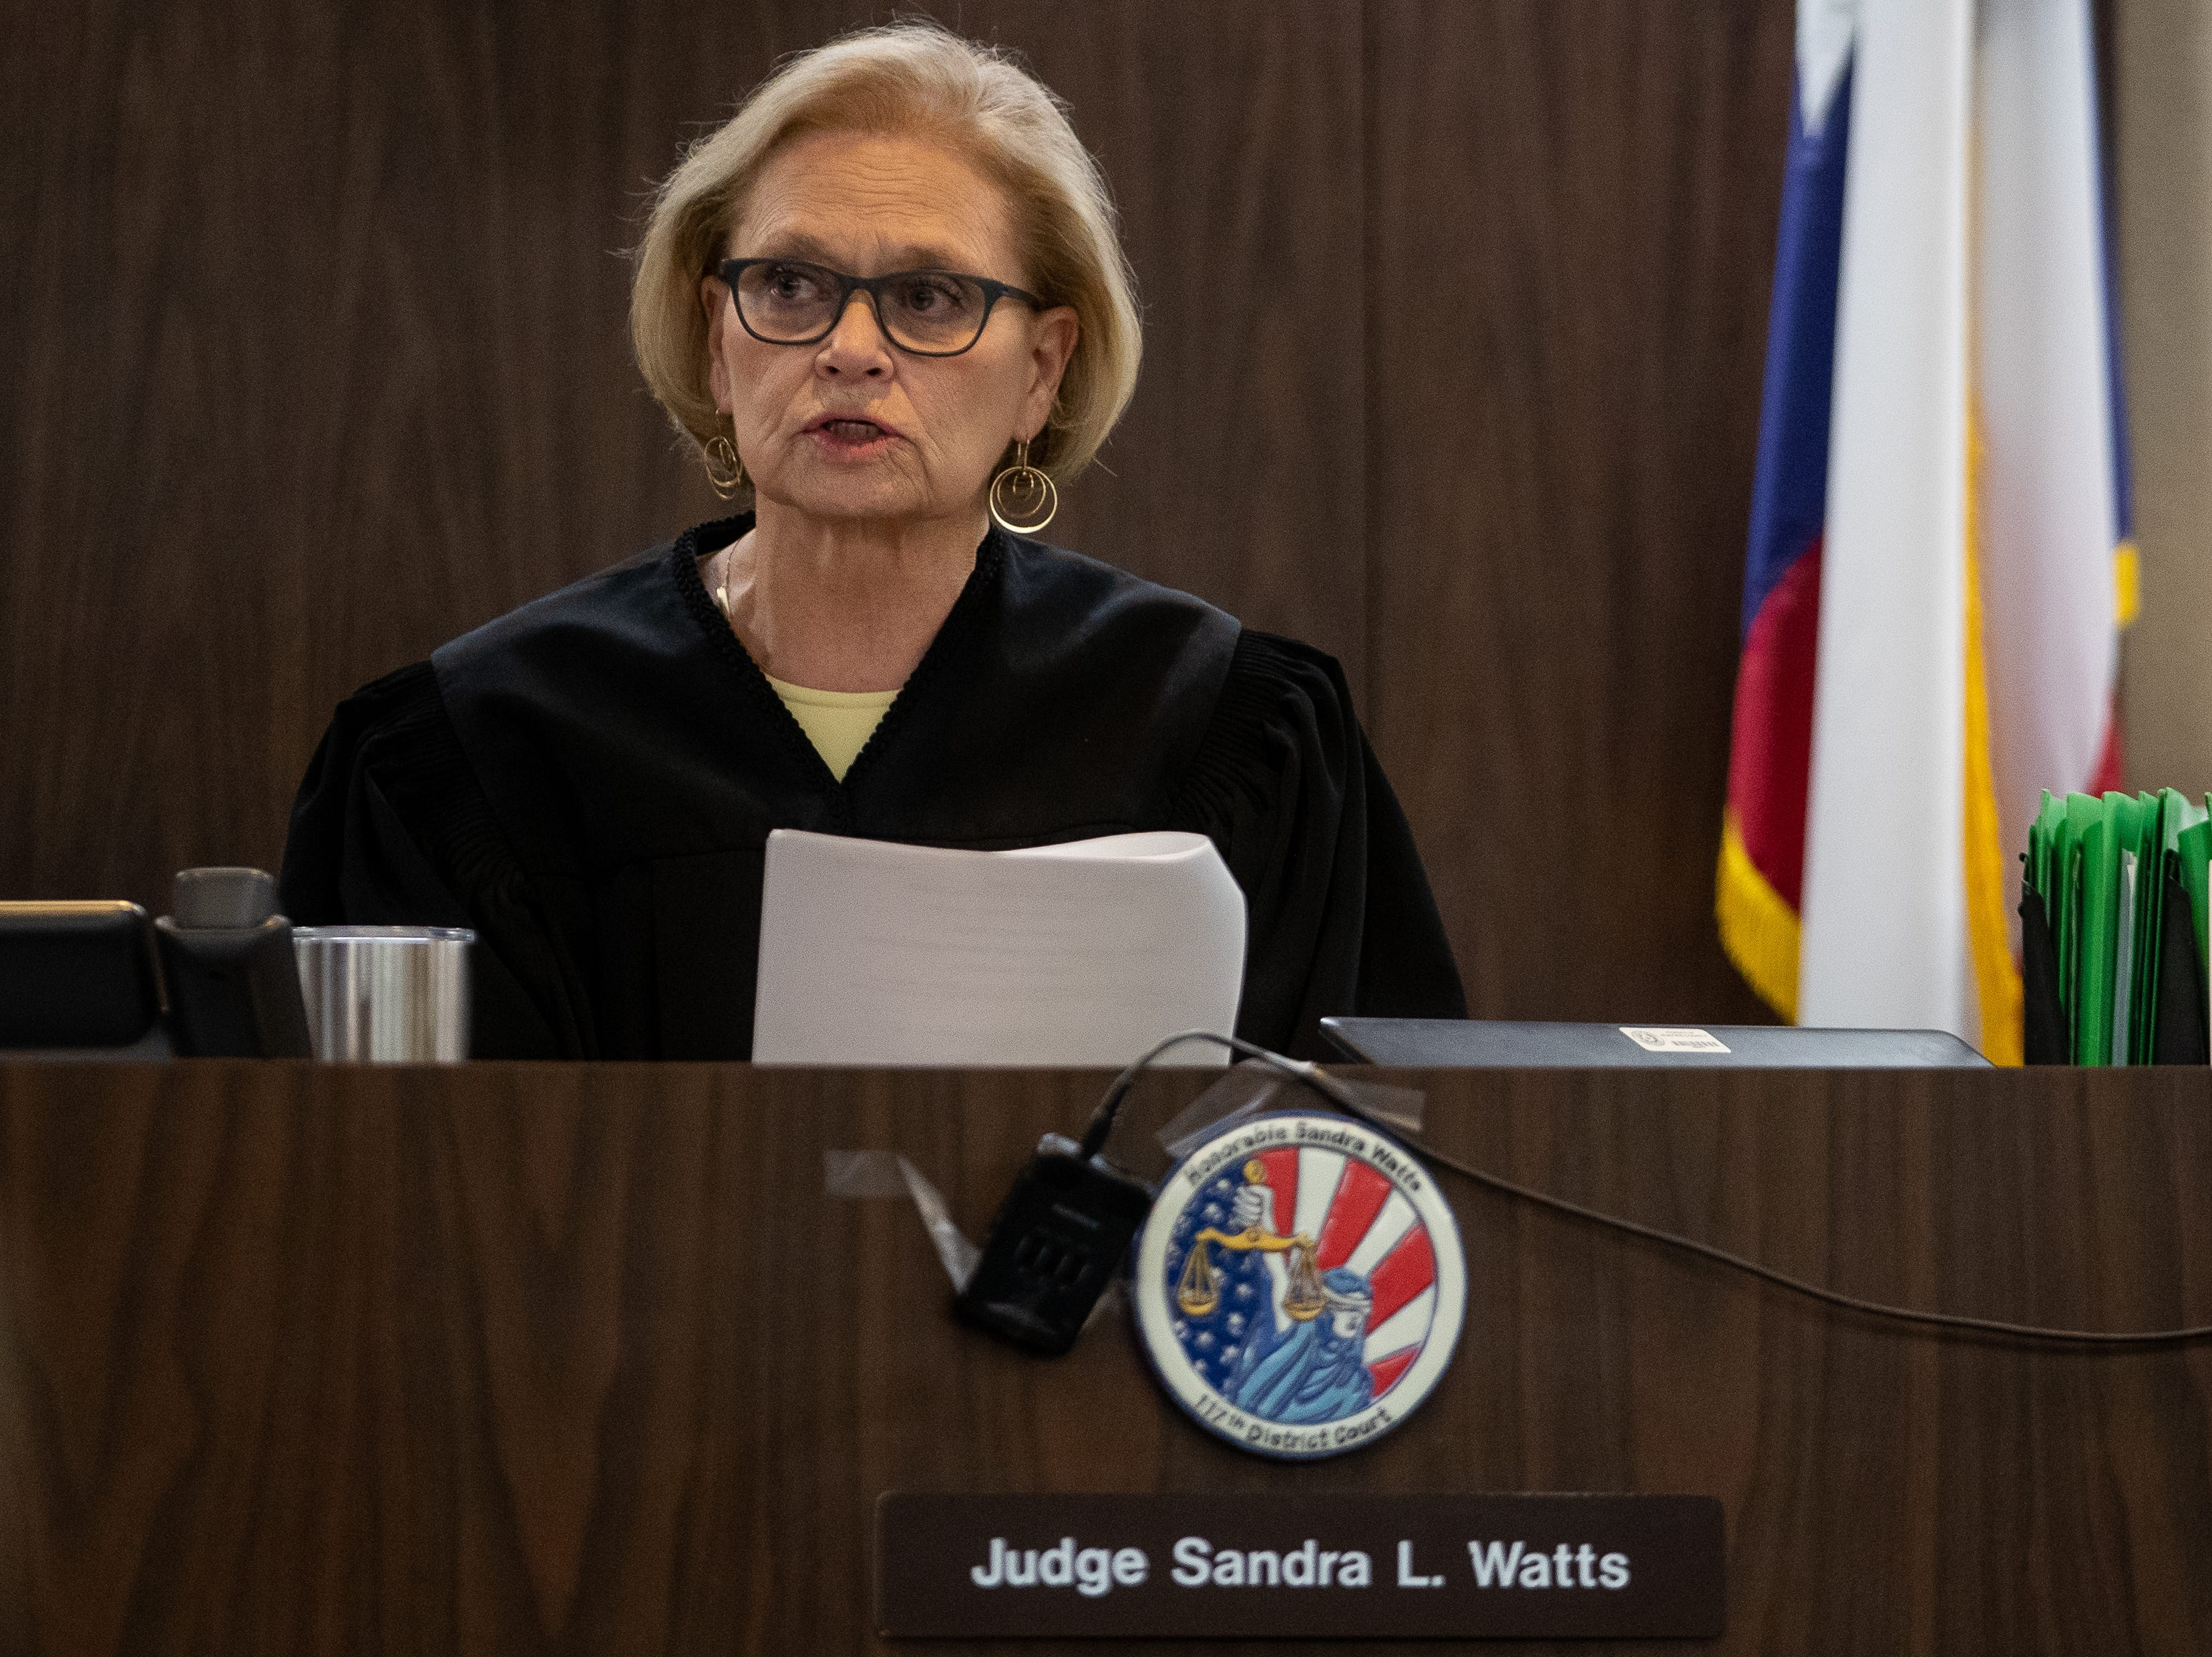 Judge Sandra Watts, 117th District Court, reads the jury's verdict in the trial of Elton Wayne Holmes on Friday, January 11, 2018. Holmes is charged in an alleged hit-and-run that left Rai-ane Garza, a King High School student dead.